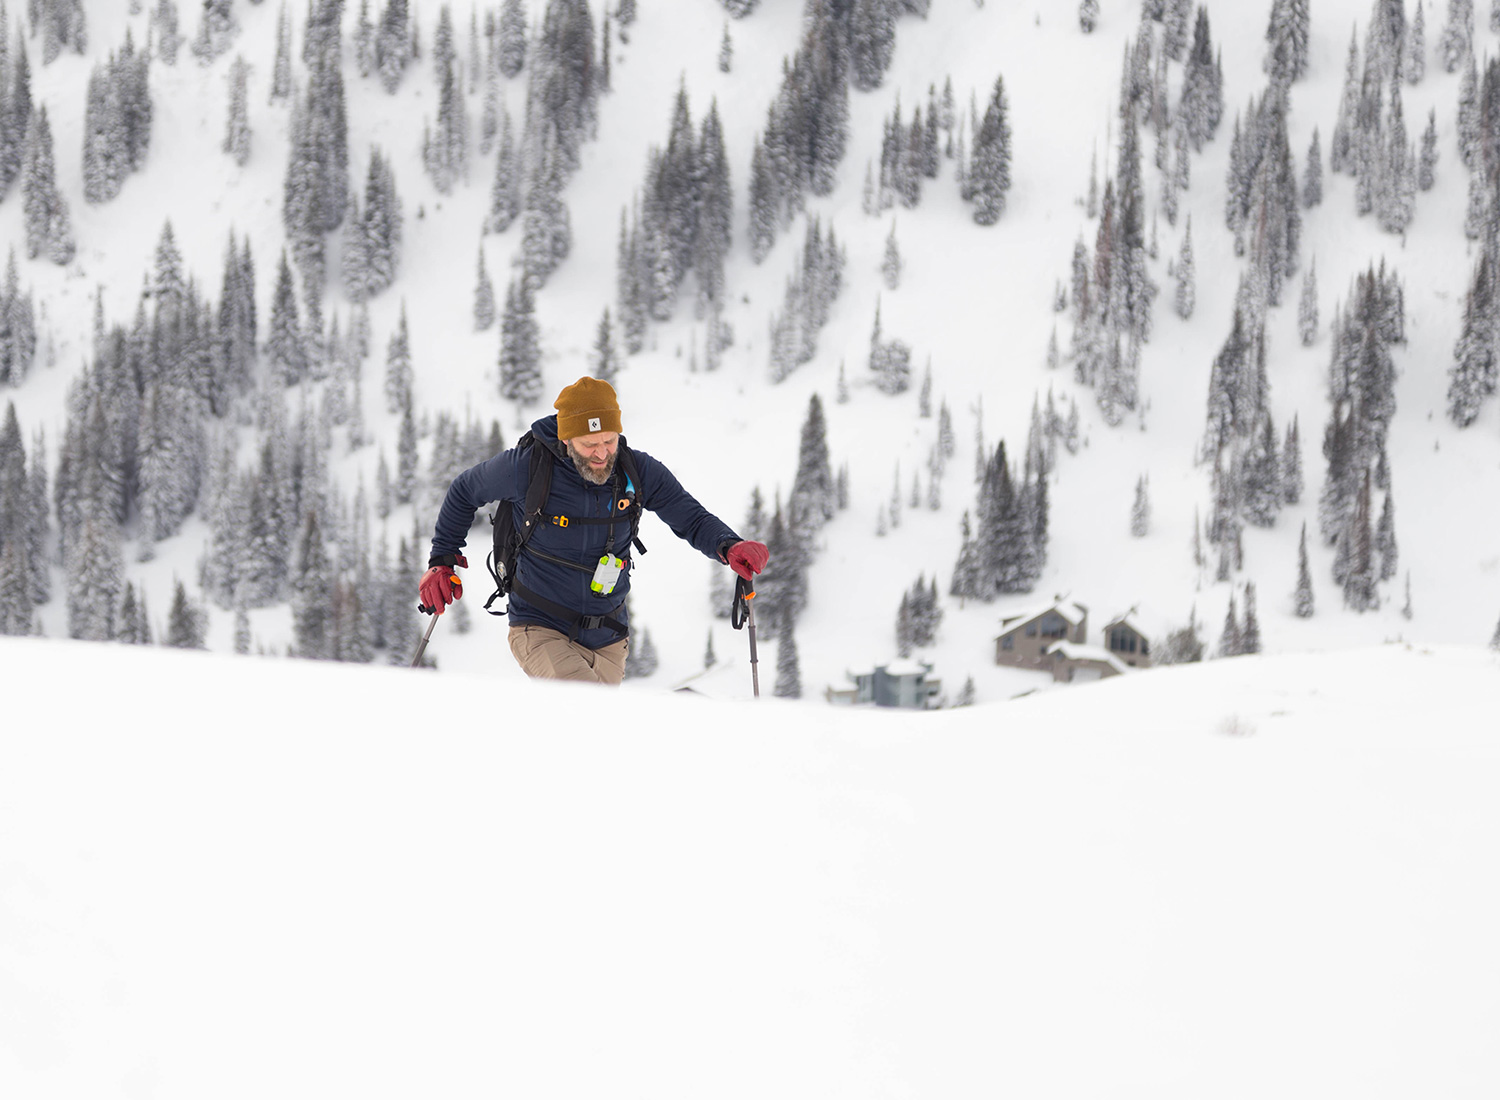 backcountry-skiing-utah-approach-pictures-toledo-bowl.jpg